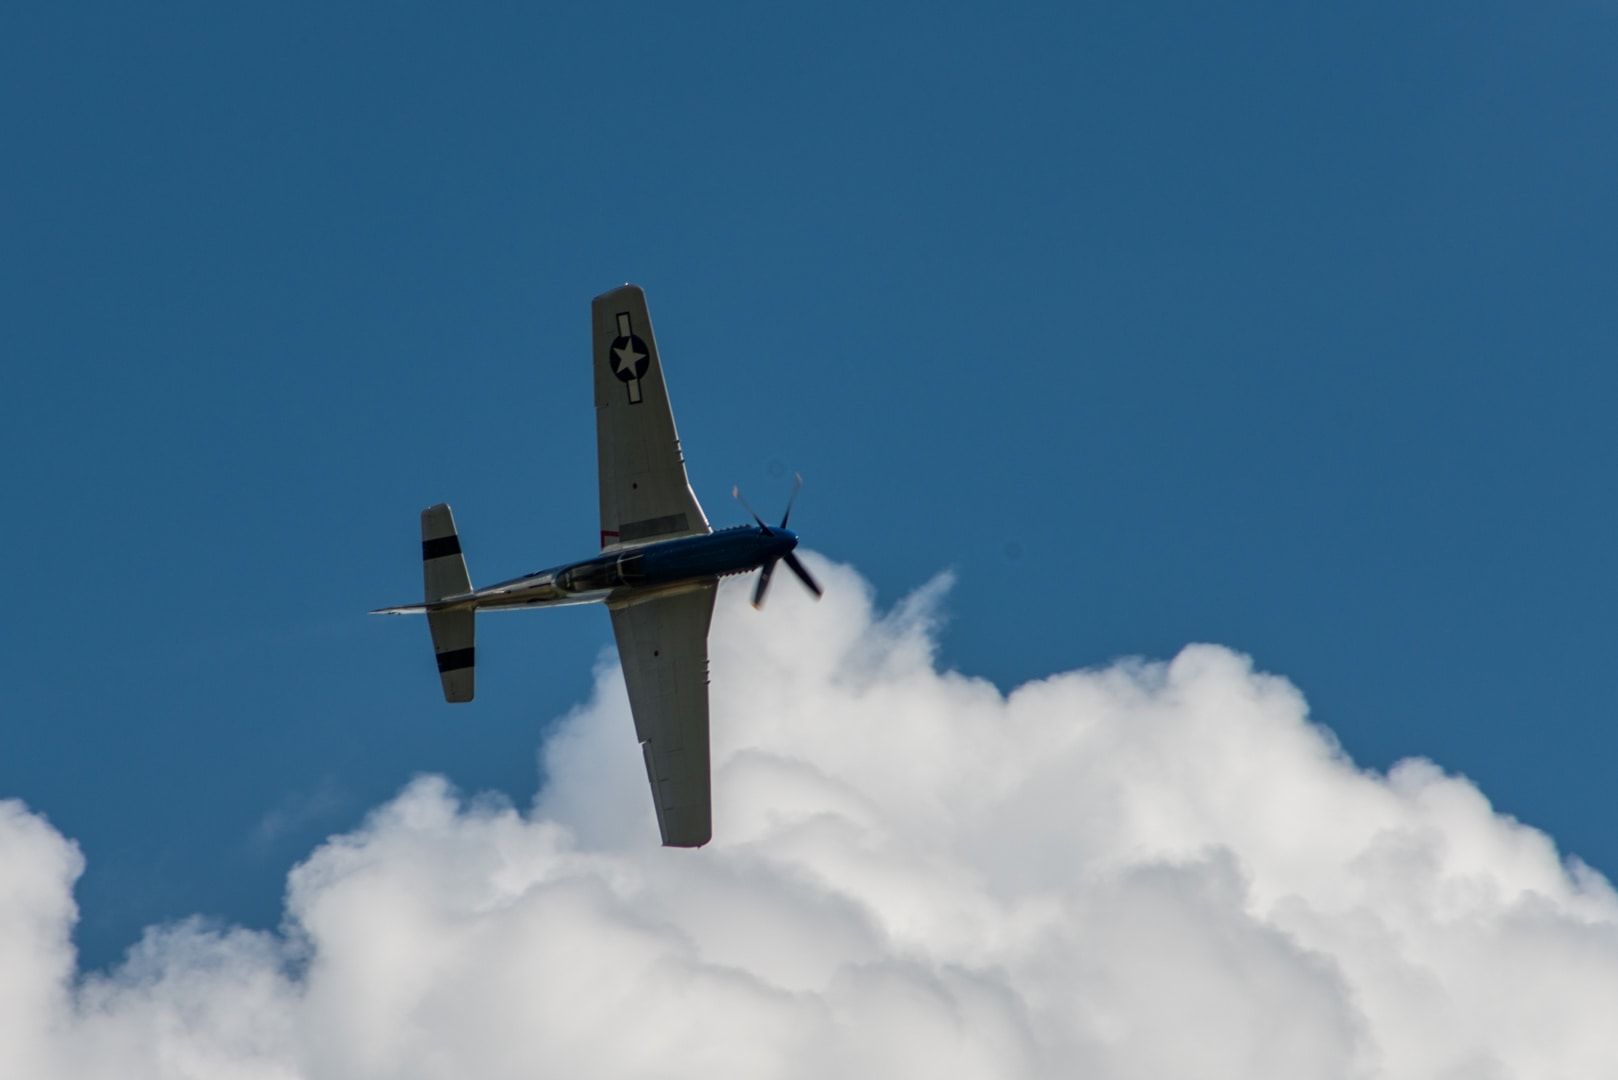 Photo d'avion du p51 mustang lors du meeting aérien sur Toulouse ( Lherm) 4